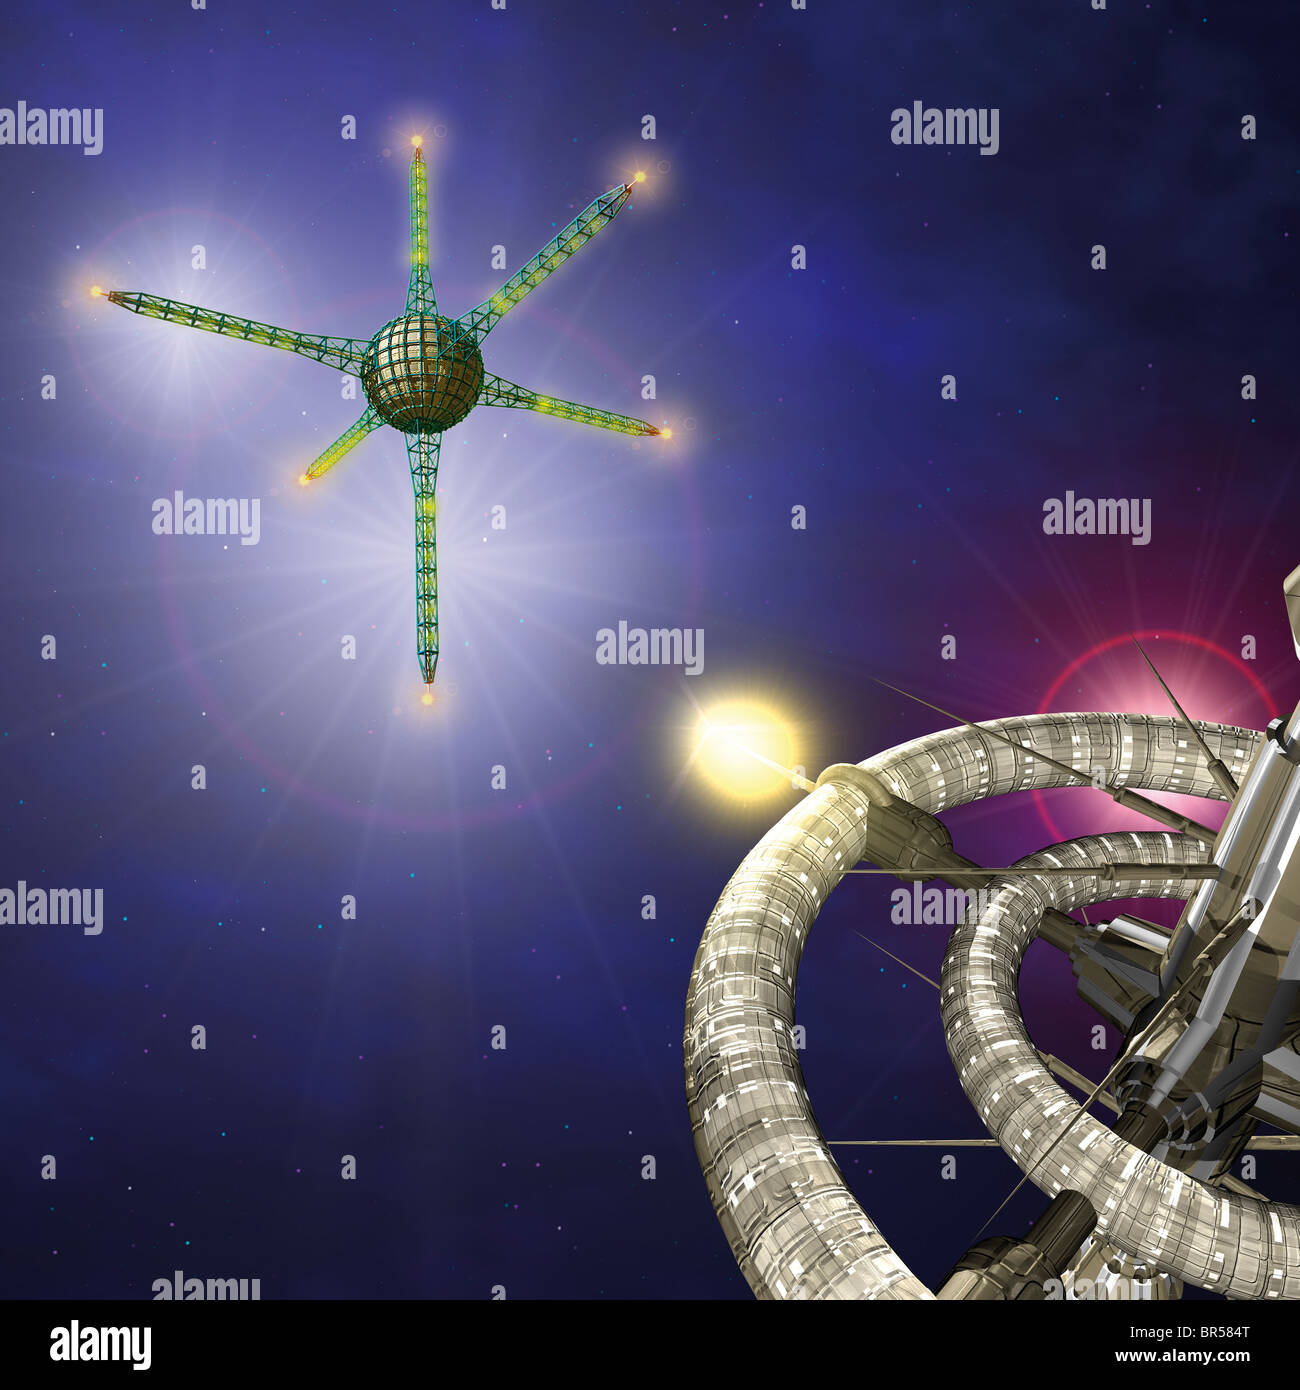 Space two orbital stations - Stock Image